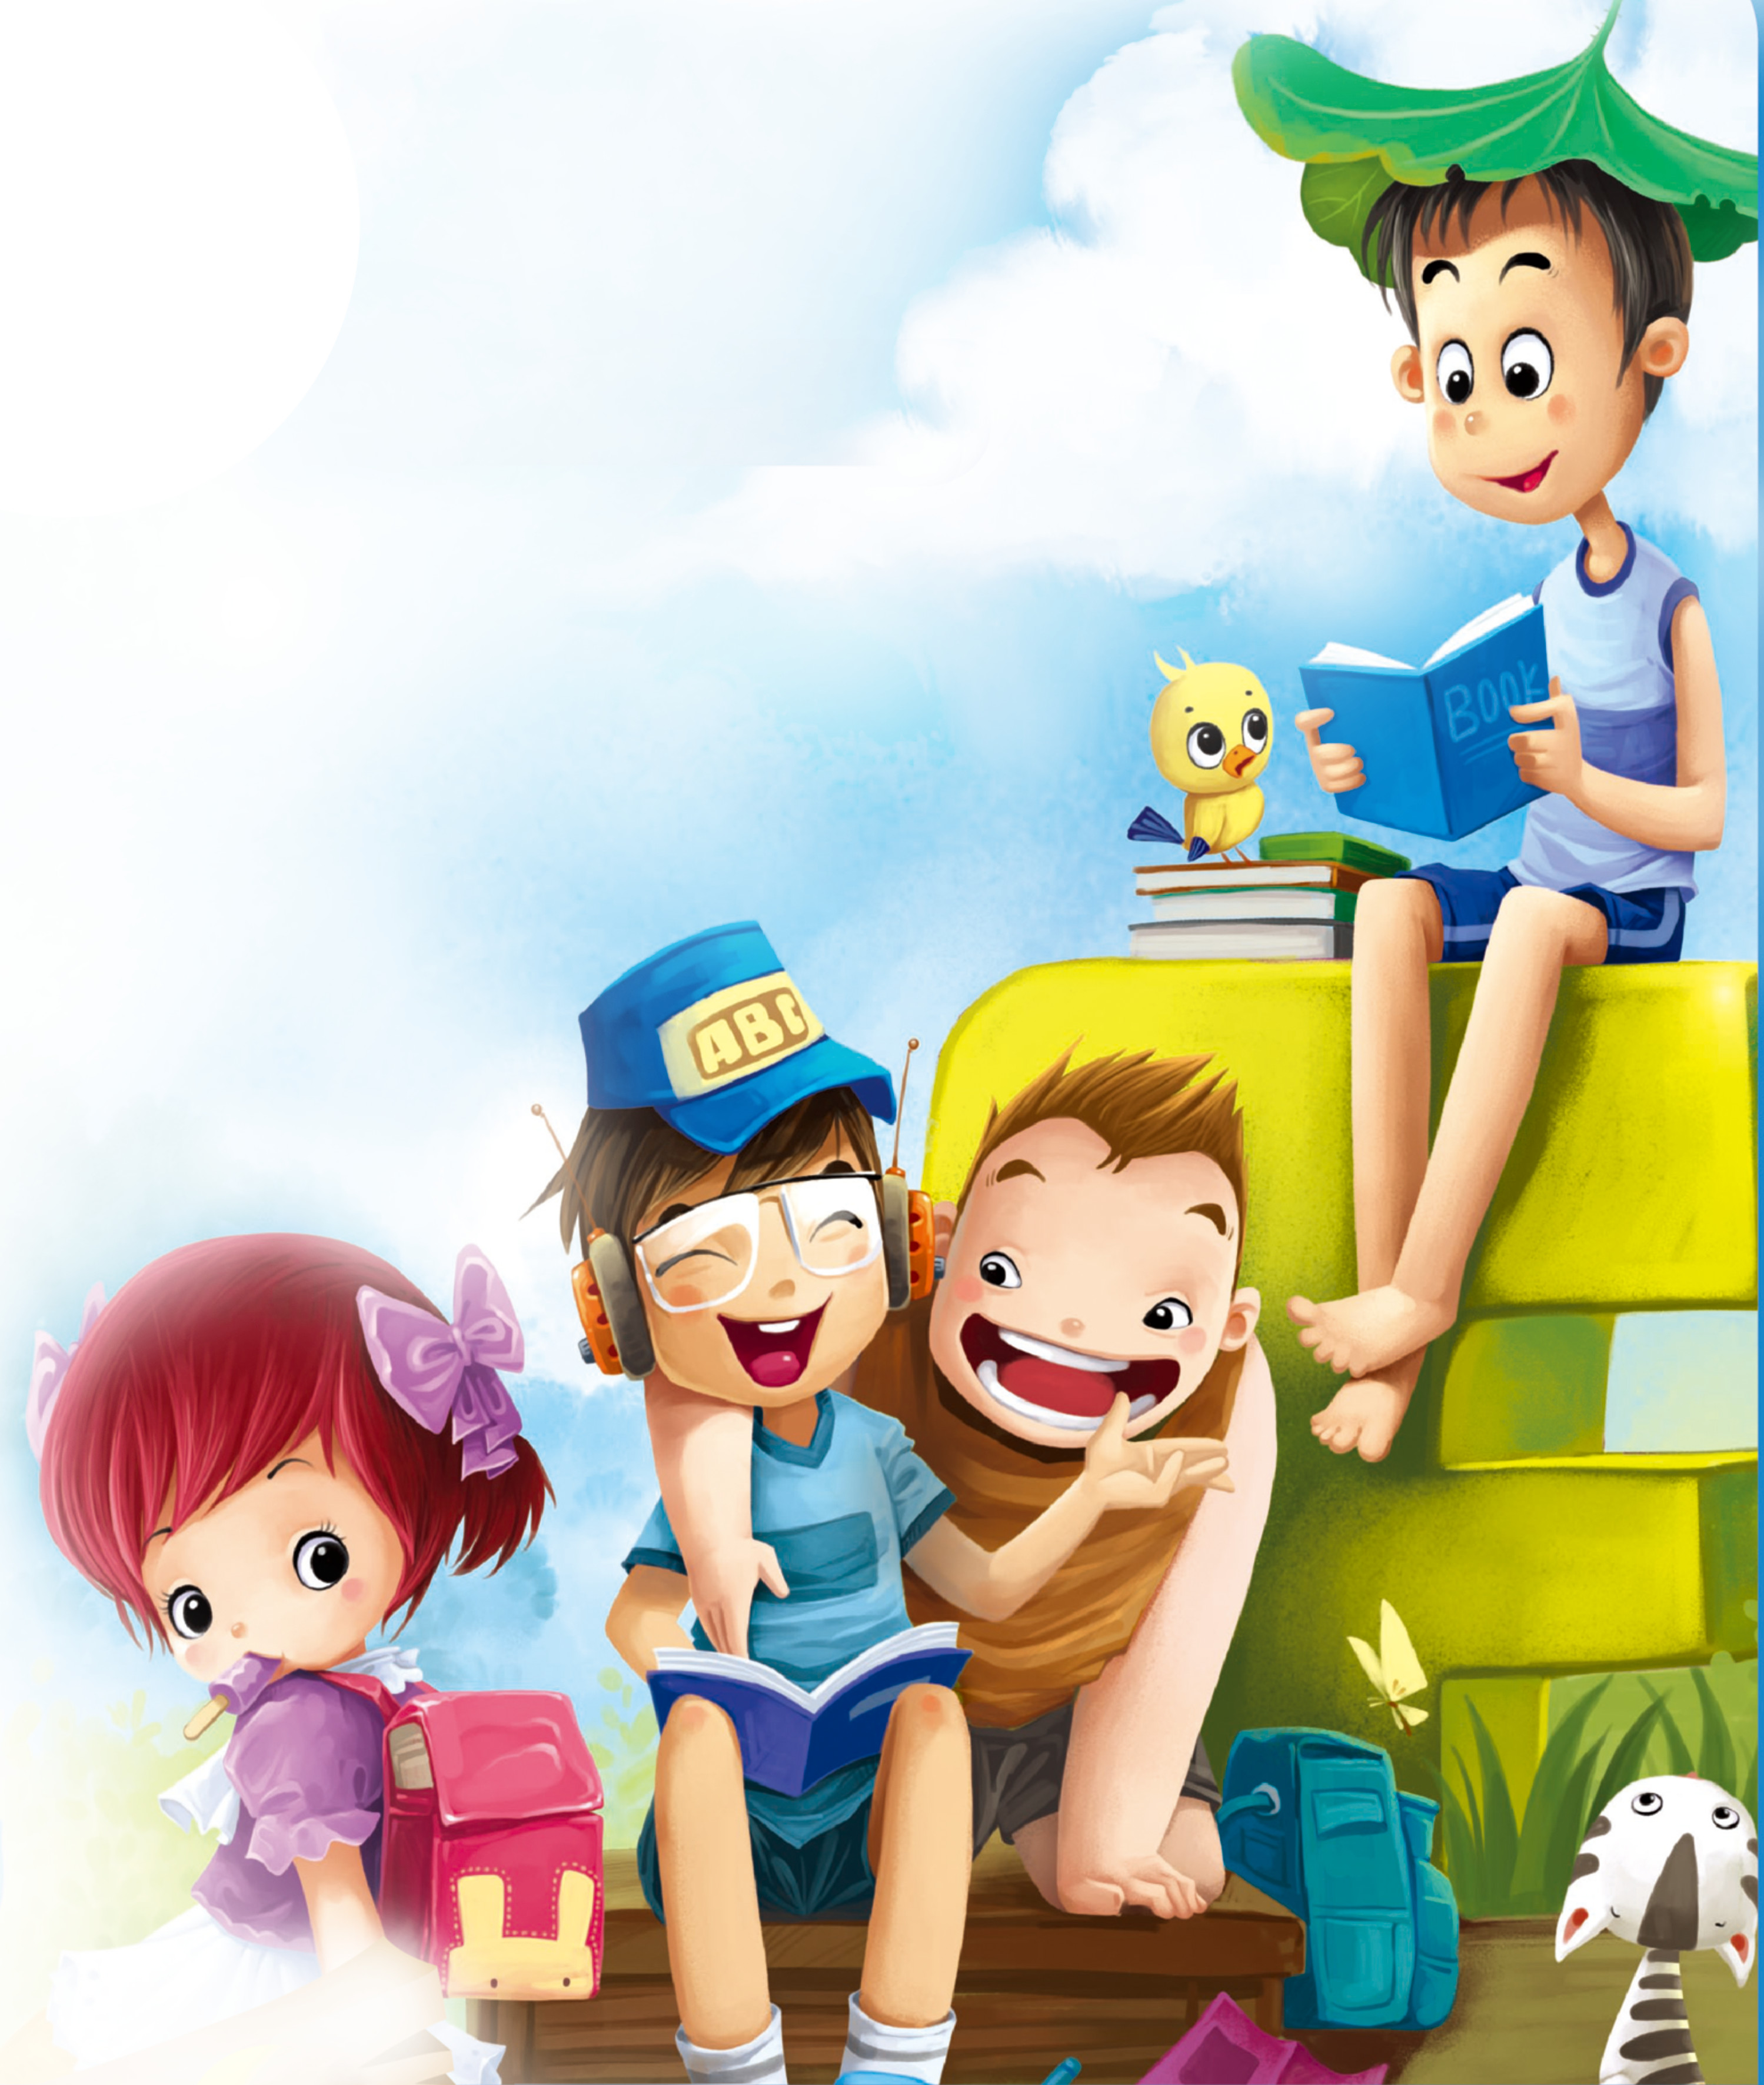 Poster Reading Cartoon Children PNG Image High Quality PNG Image